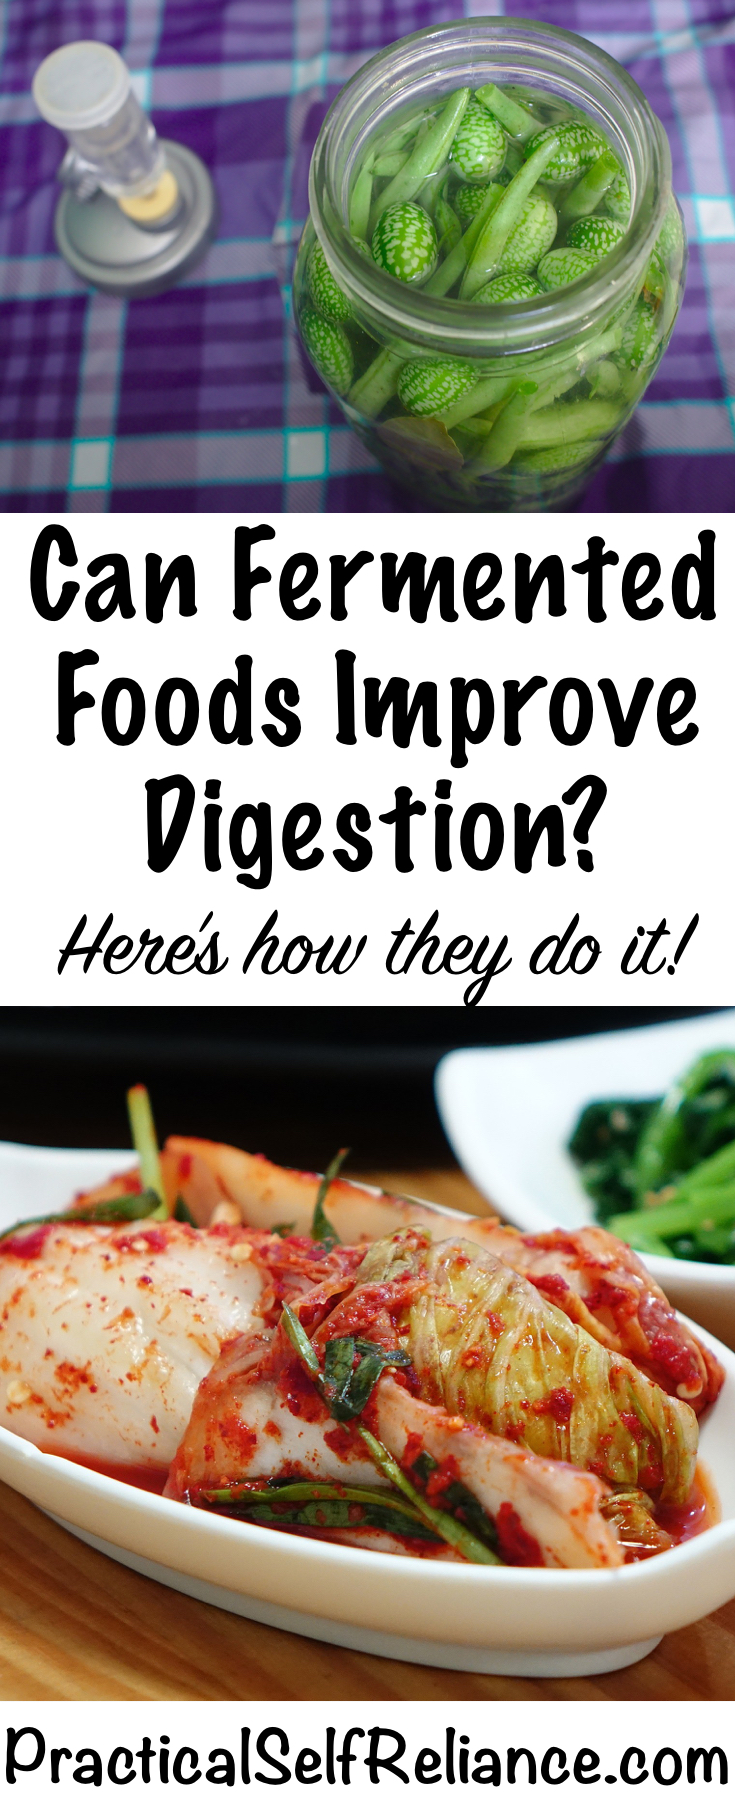 Can Fermented Foods Improve Digestion? Here's how!